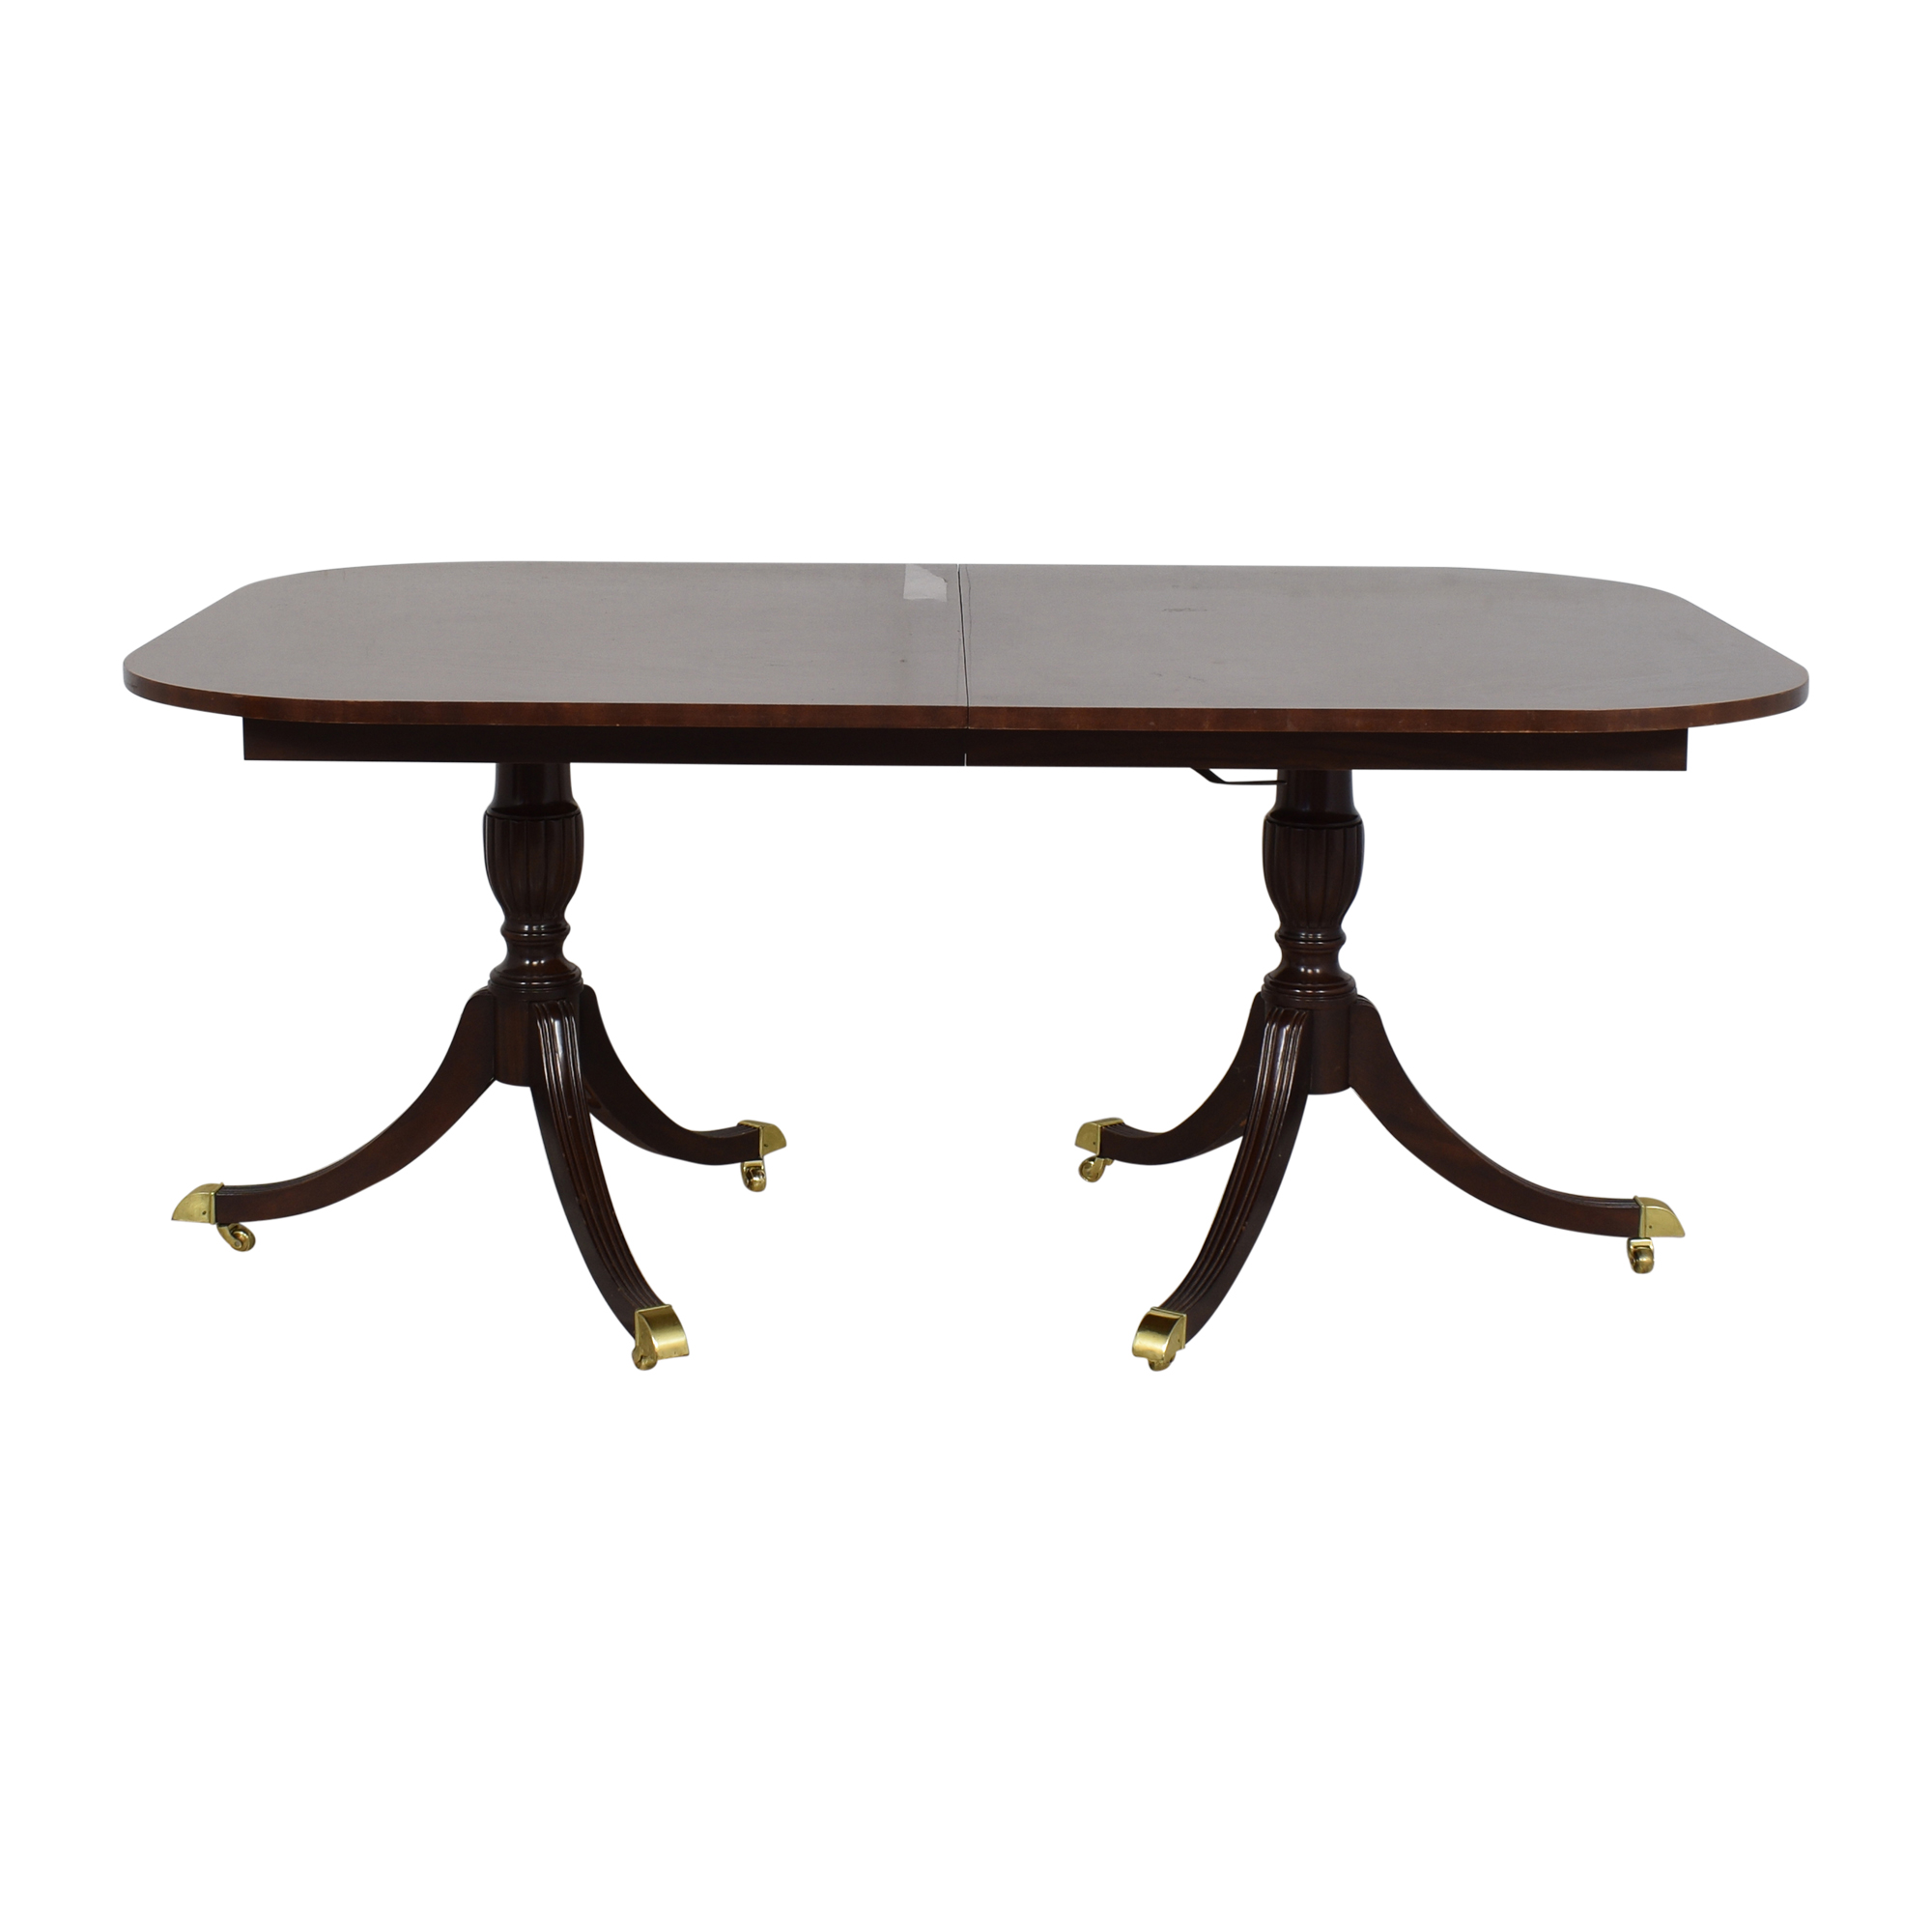 Councill Councill Chippendale Style Dining Table for sale